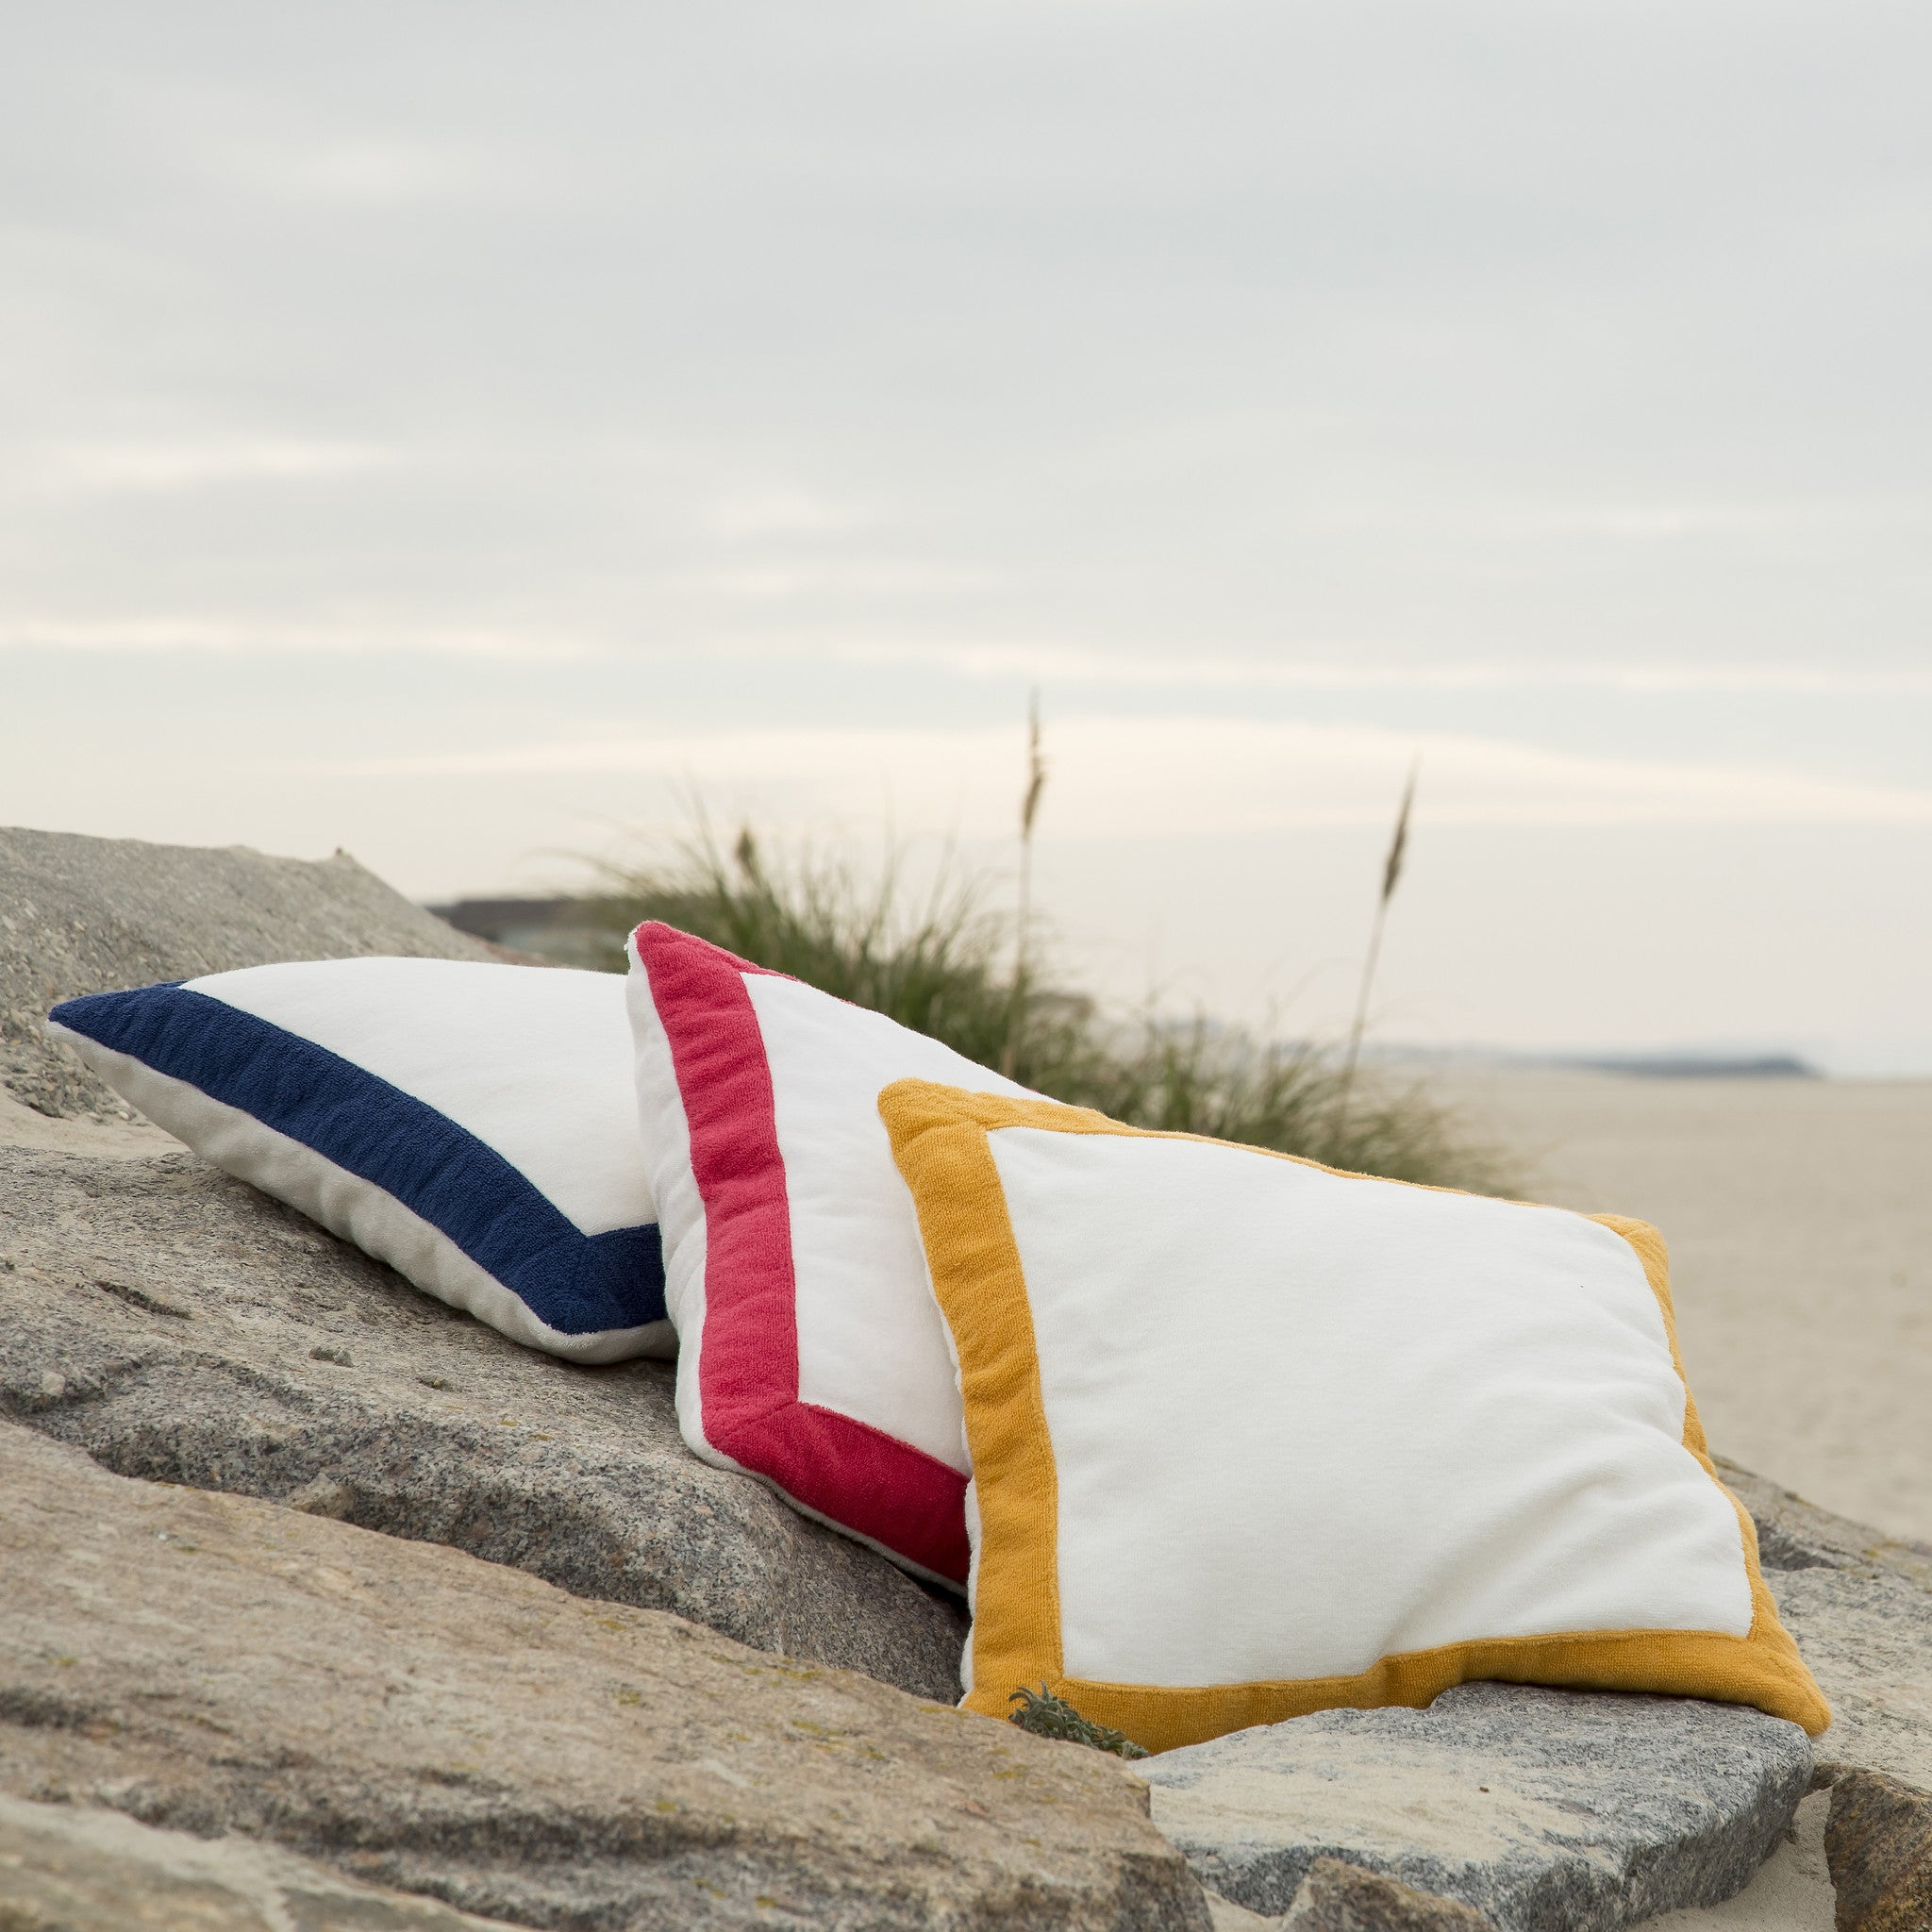 beachpillow the night from a beach it pillow and whipped lifes last about pillows beaches is s jones okio i designs oak b repost gilgo we using ocb this life live up that minutes